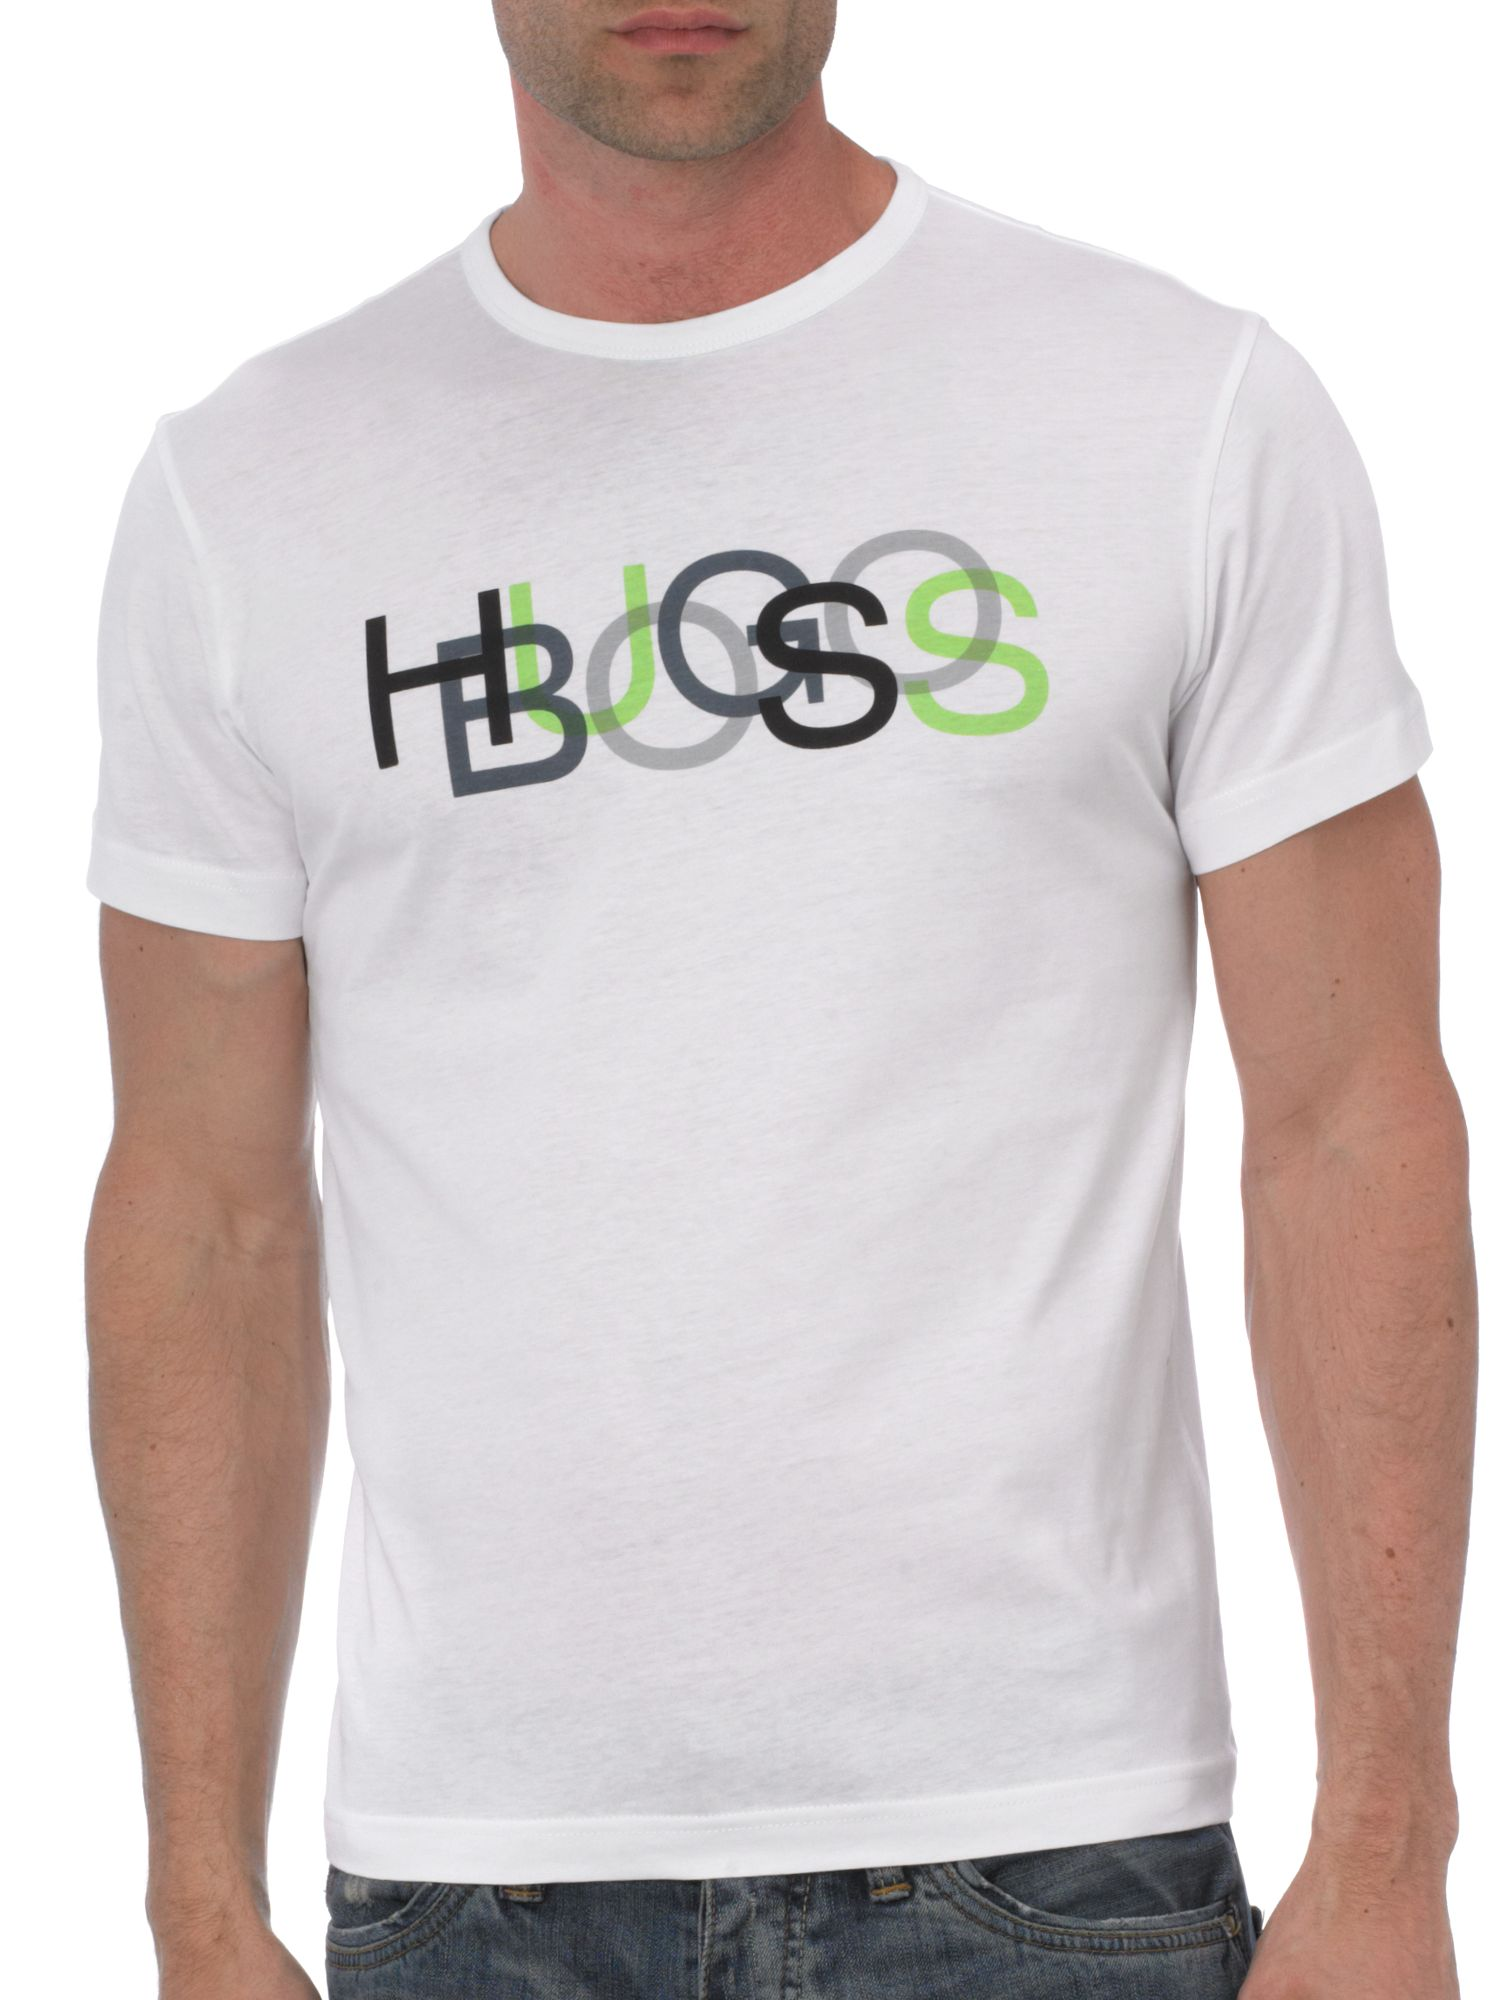 Hugo Boss Boss logo t-shirt product image